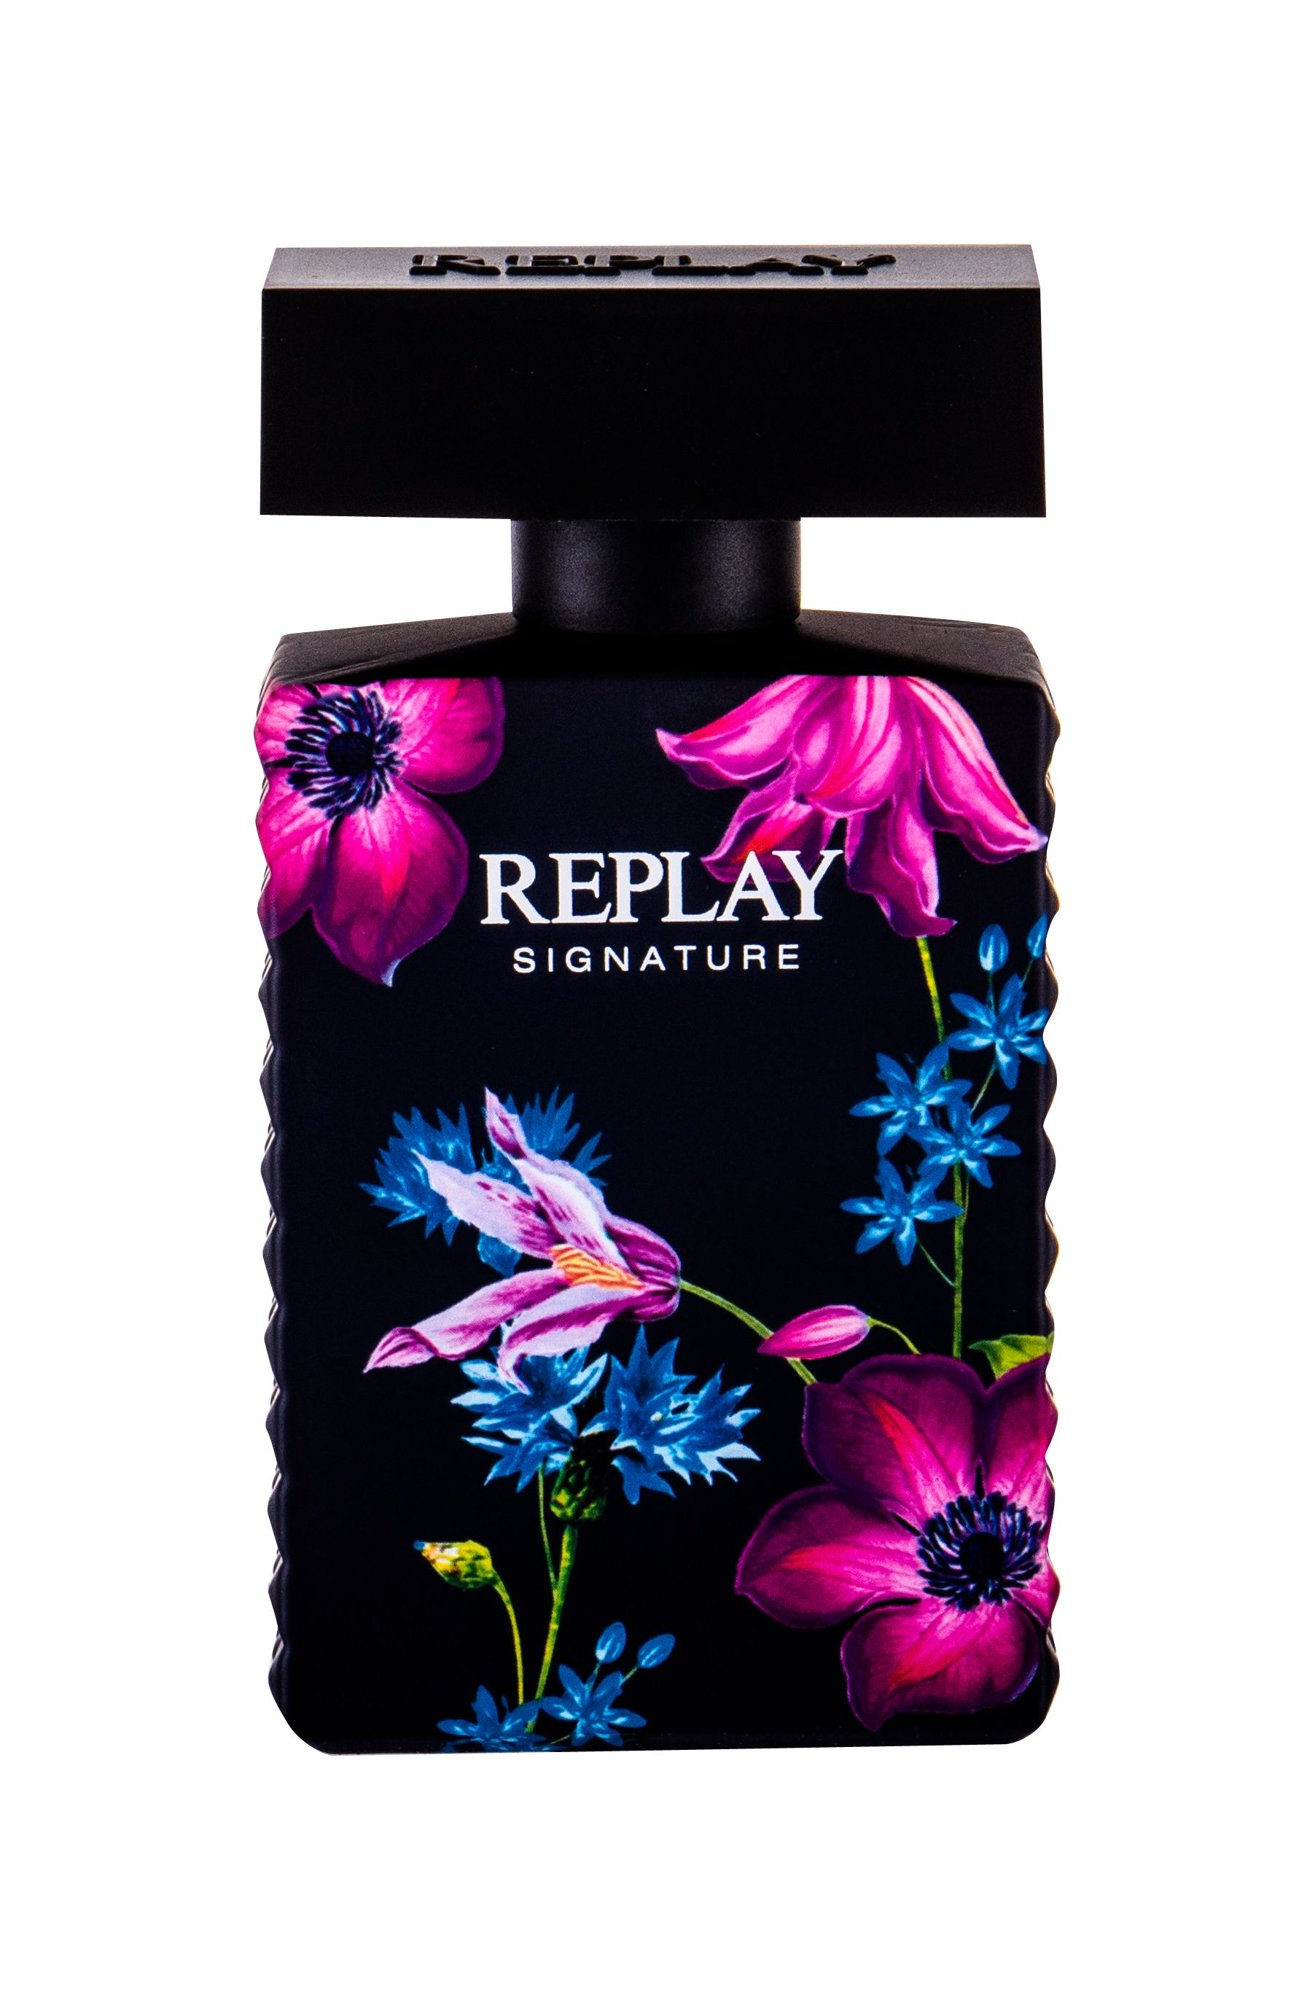 Replay Signature Eau de Parfum 50ml